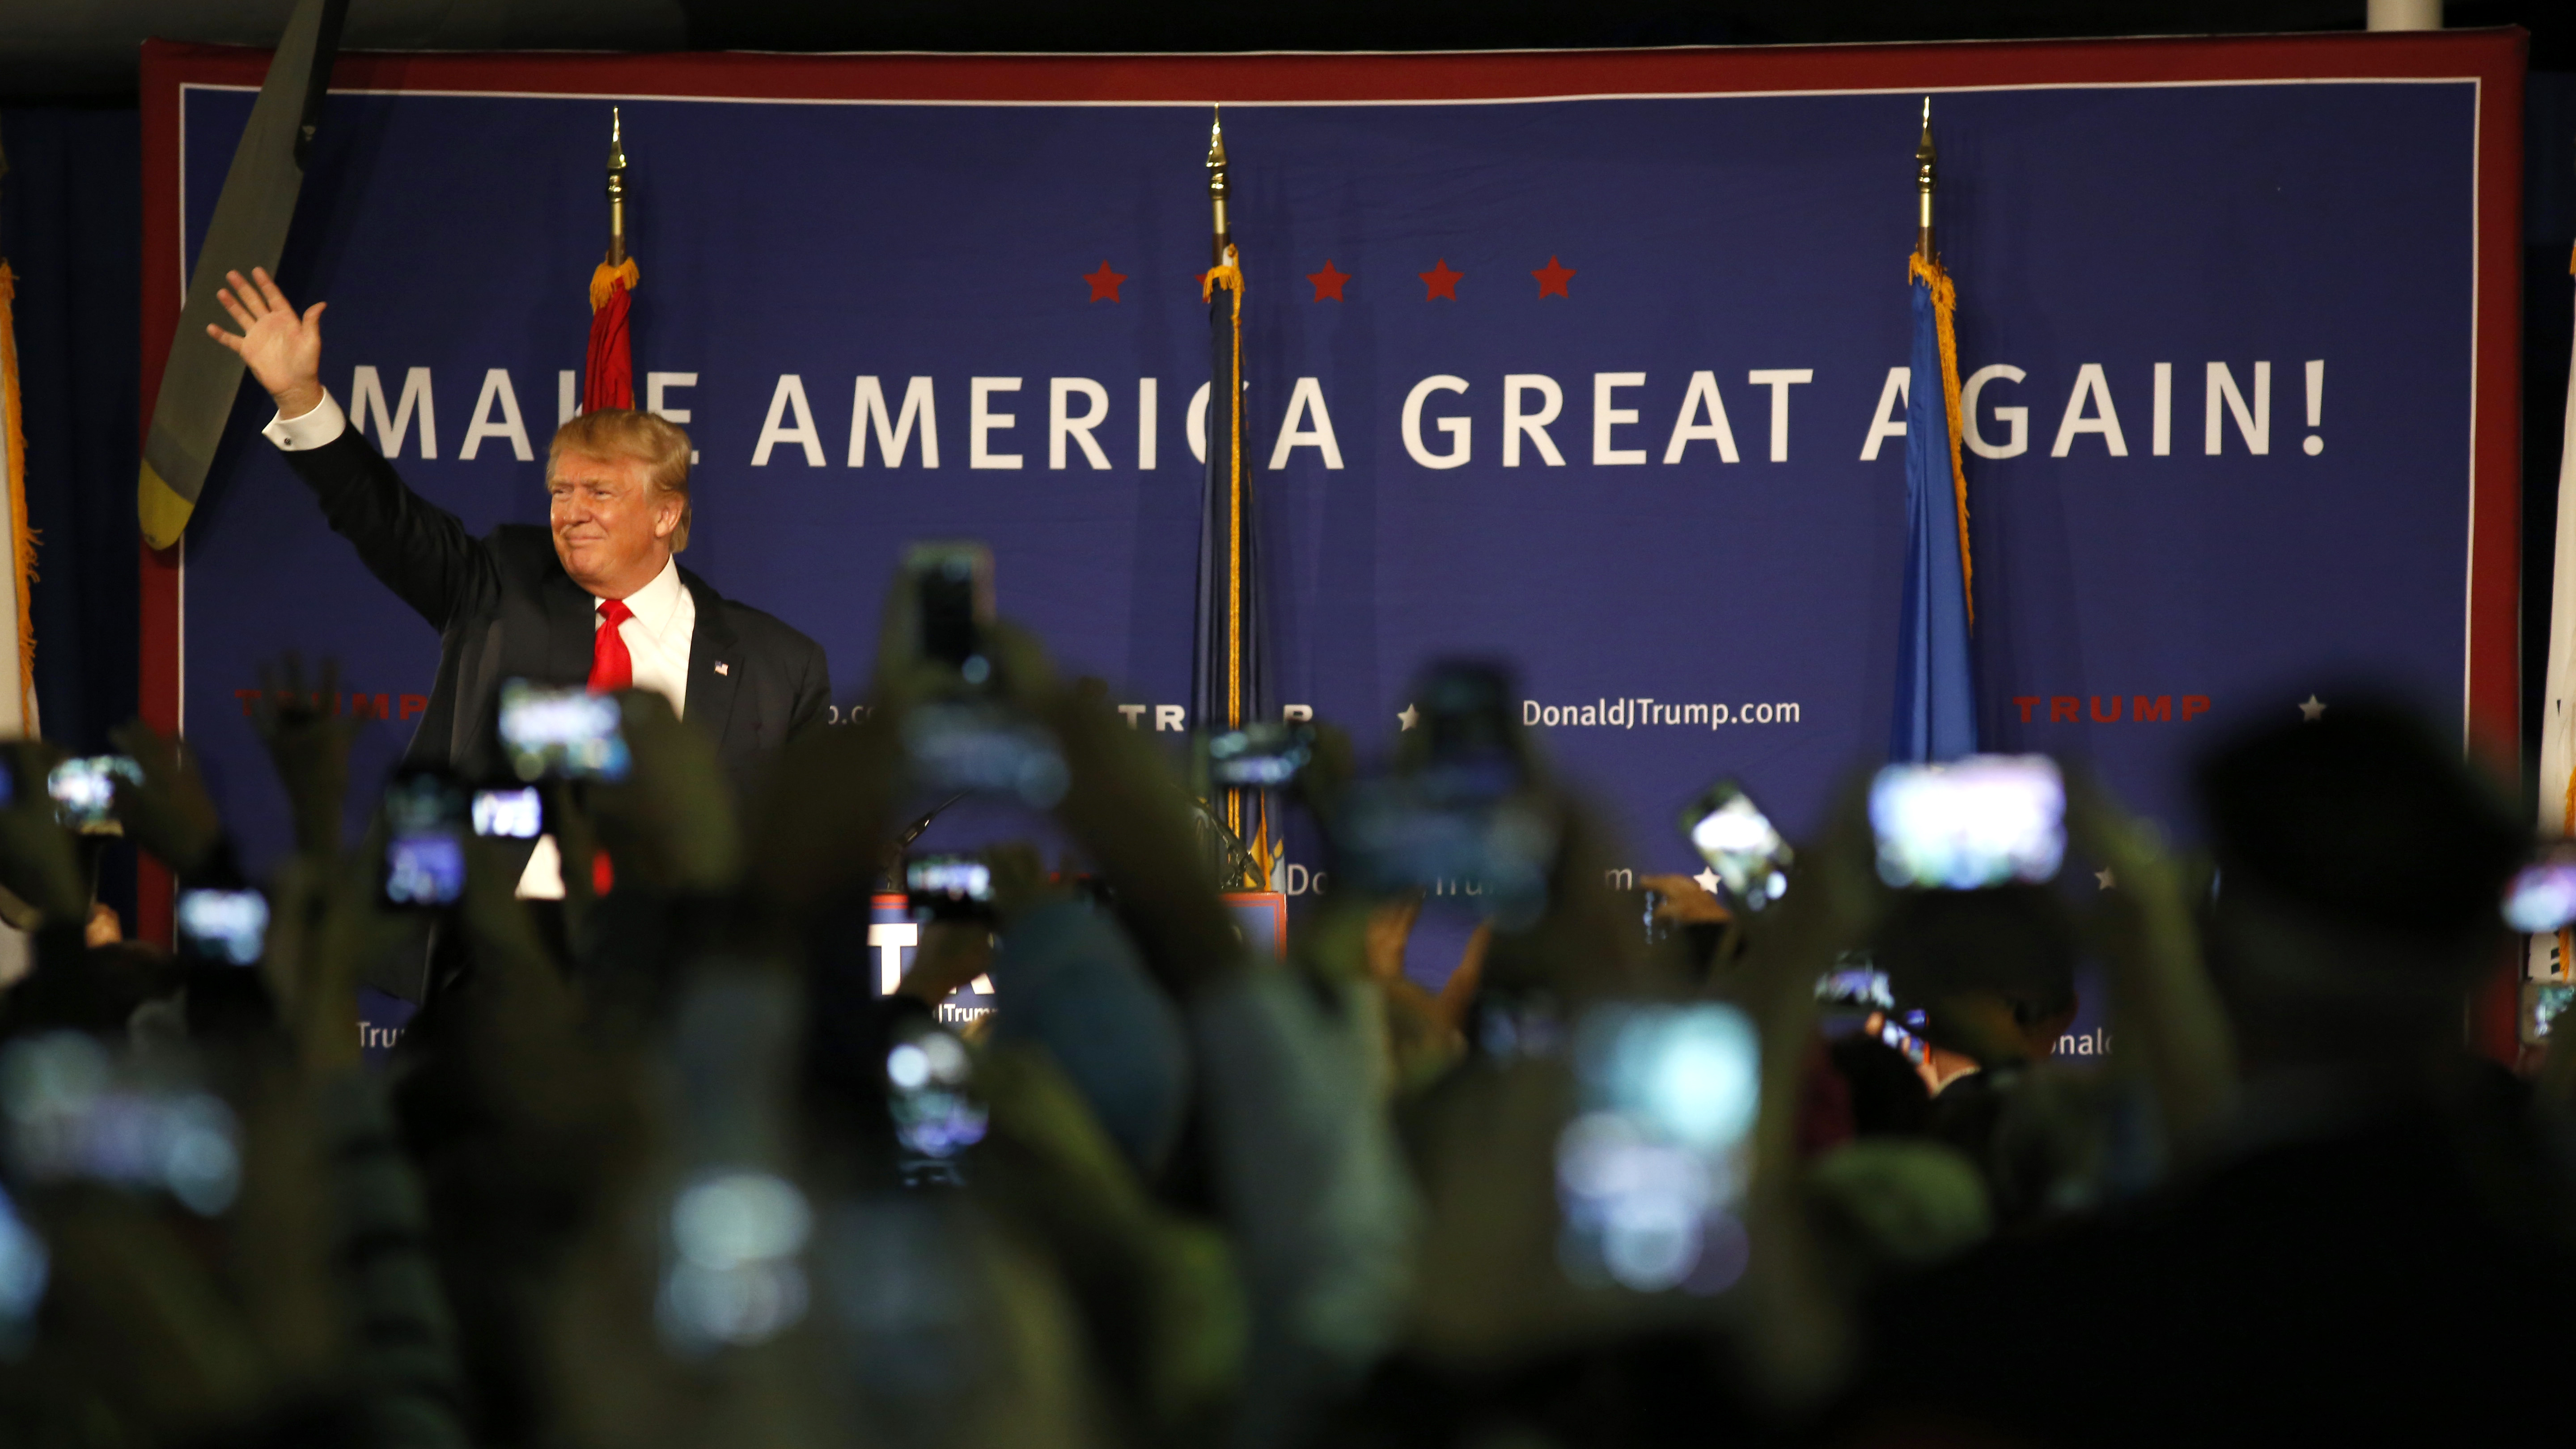 After issuing a statement calling for a ban on Muslim immigrants, Donald Trump holds a rally in Mt. Pleasant, S.C., on Monday. (Photo by Mic Smith/AP)